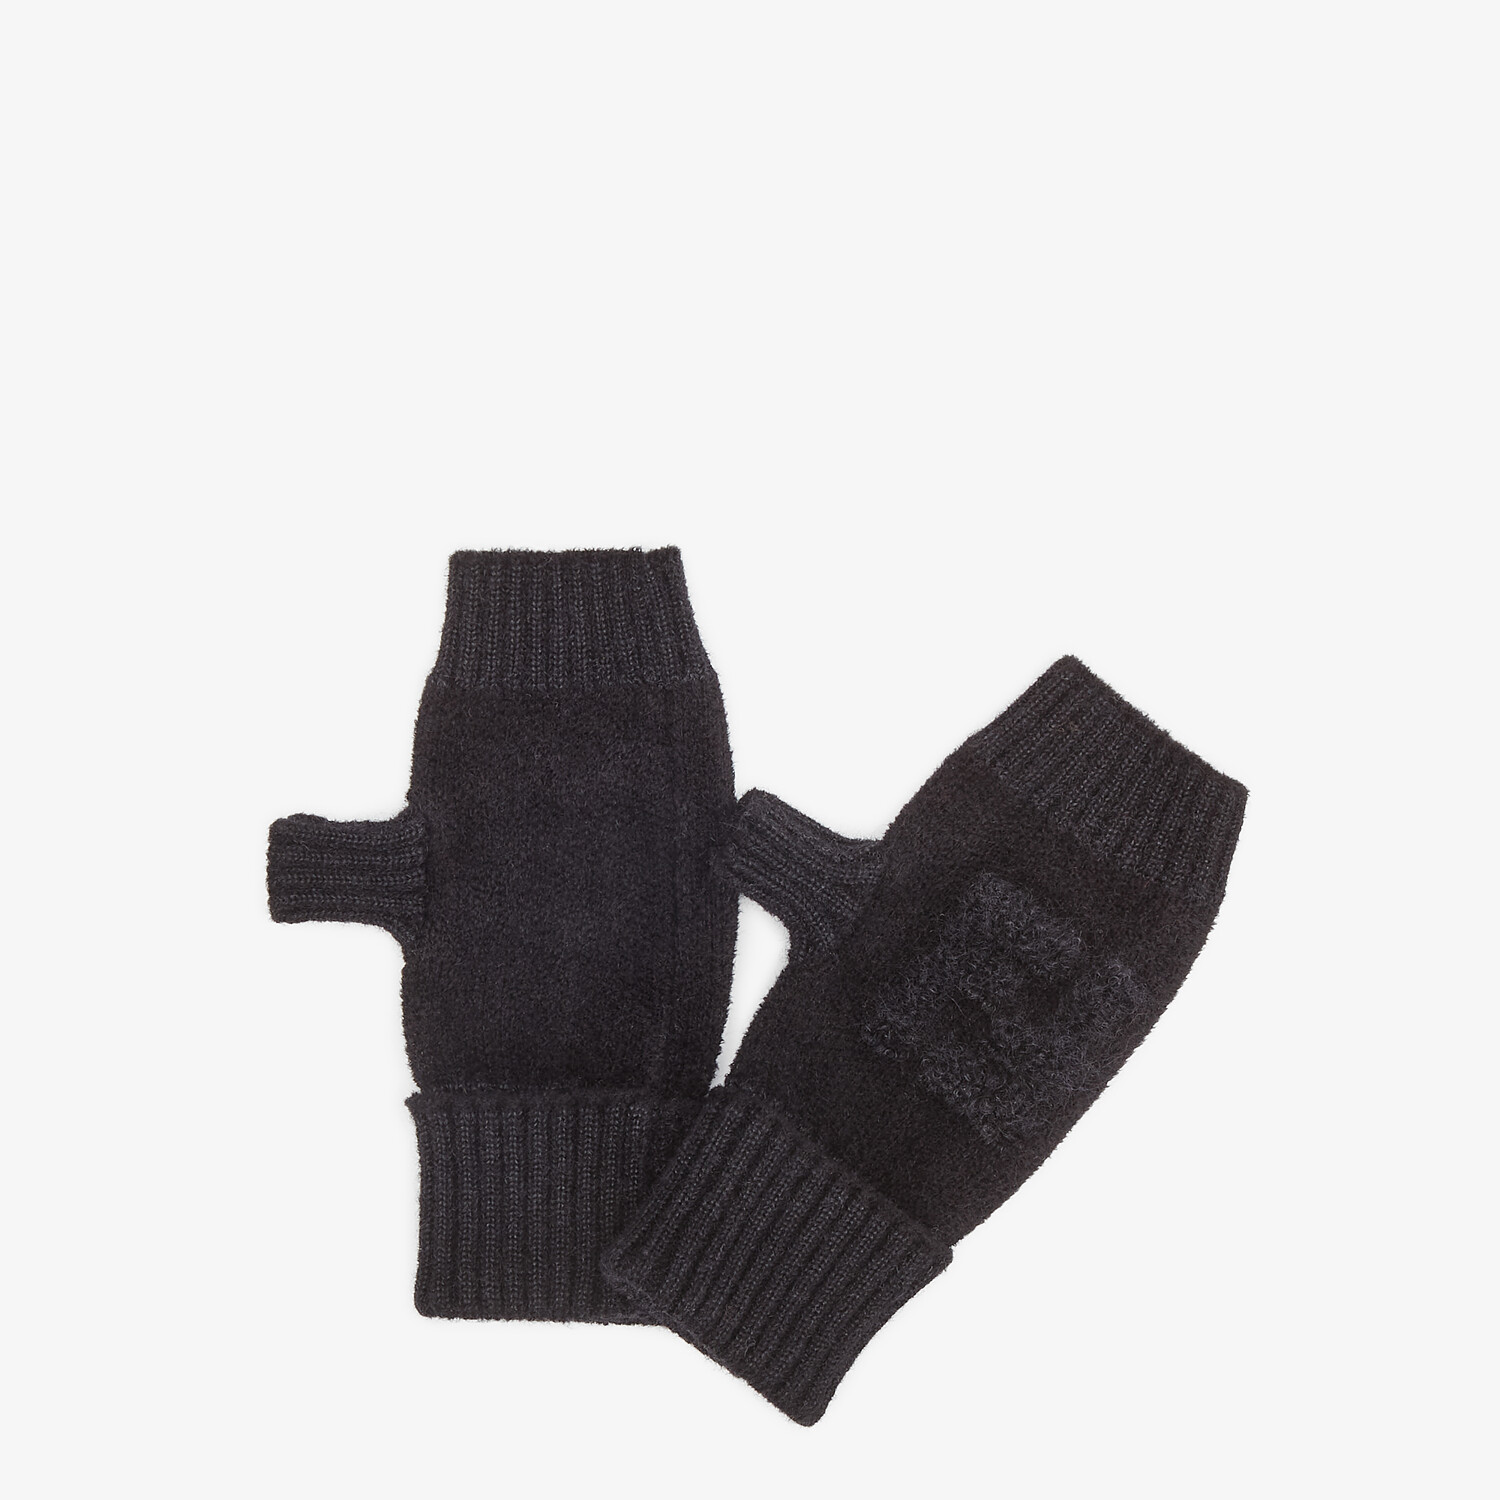 FENDI GLOVES - Black knit cuff - view 1 detail